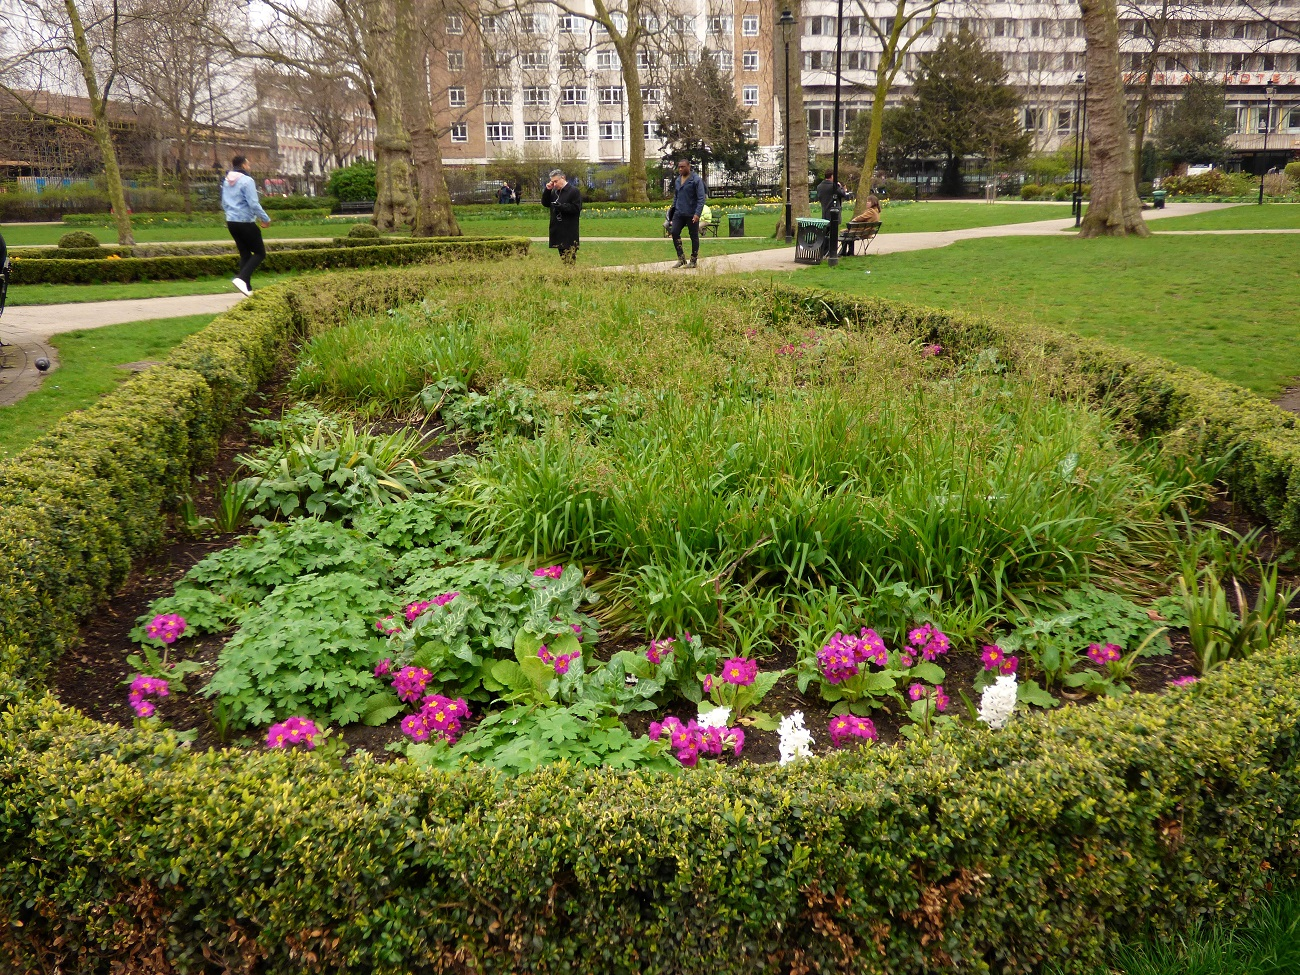 20170323_Camden_Russell-Square_Flower-Beds-at-Russell-Square